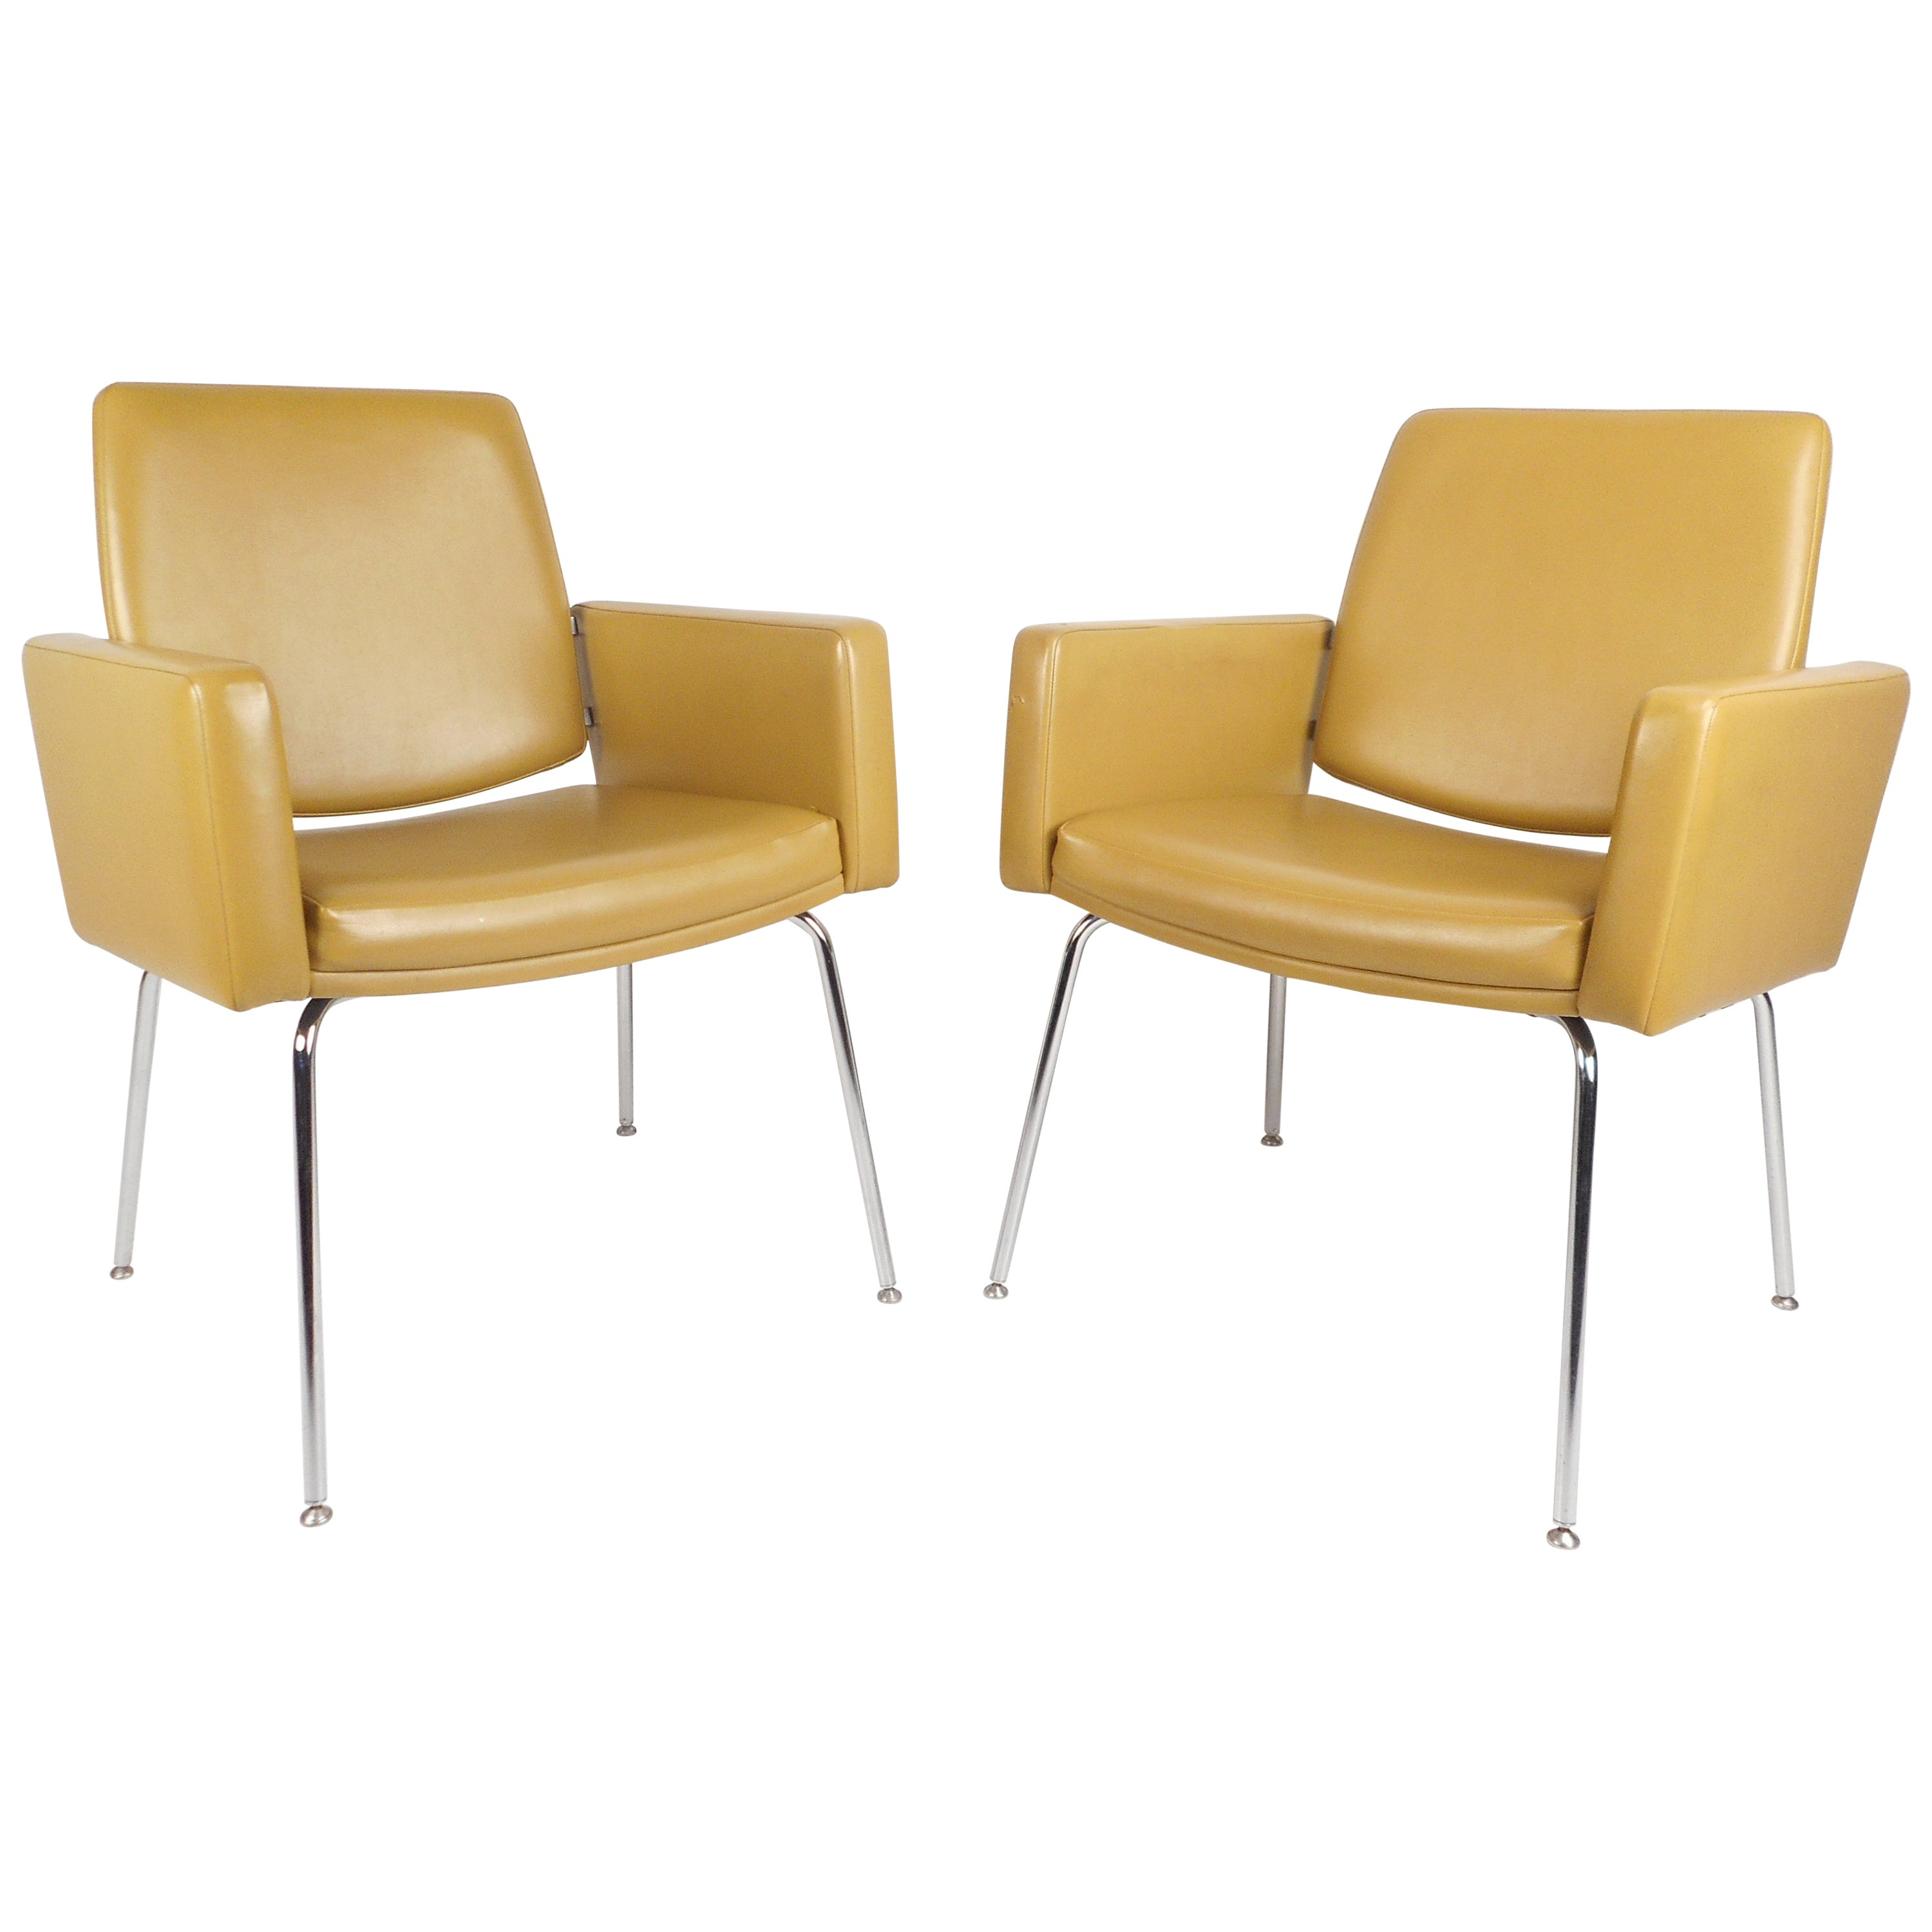 Mid-Century Modern Lounge Chairs by J.G. Furniture Company